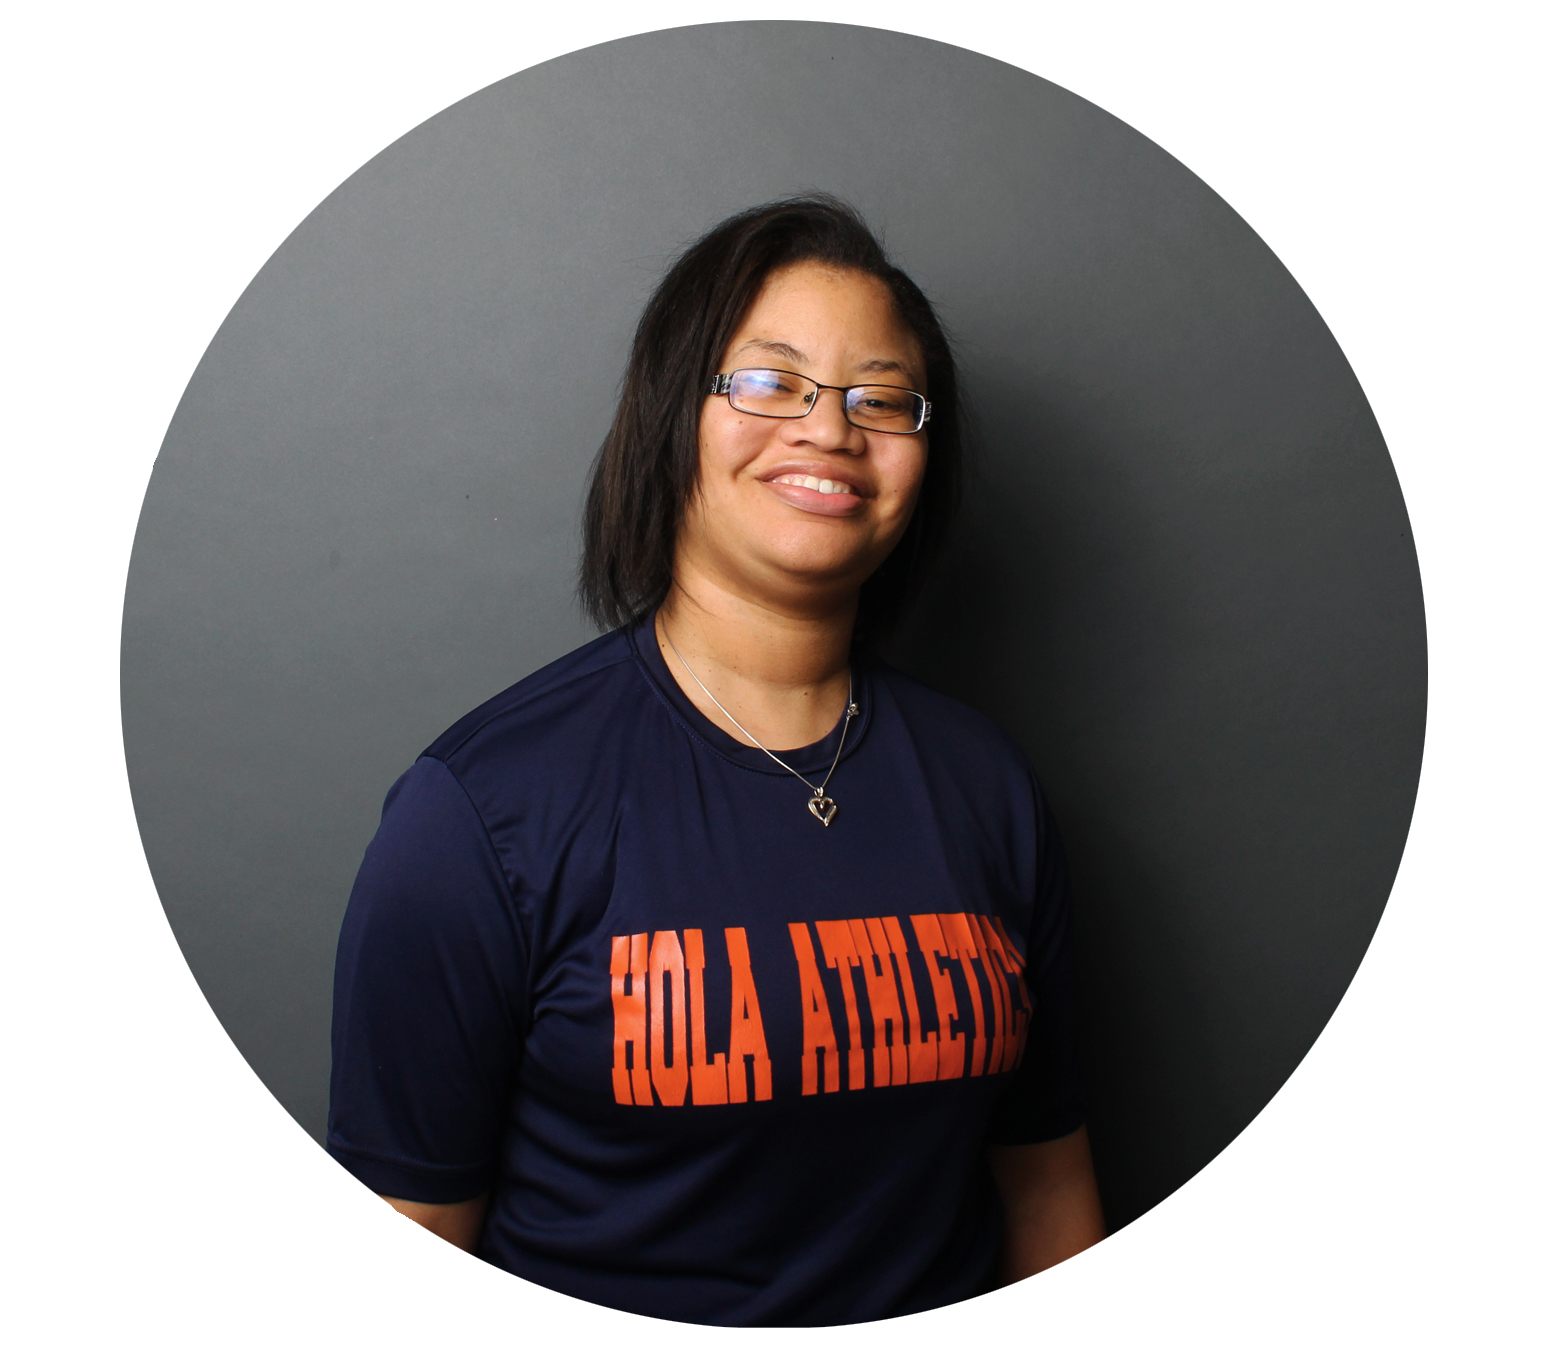 KRISTINA WHEELER - Athletics Program Coordinator